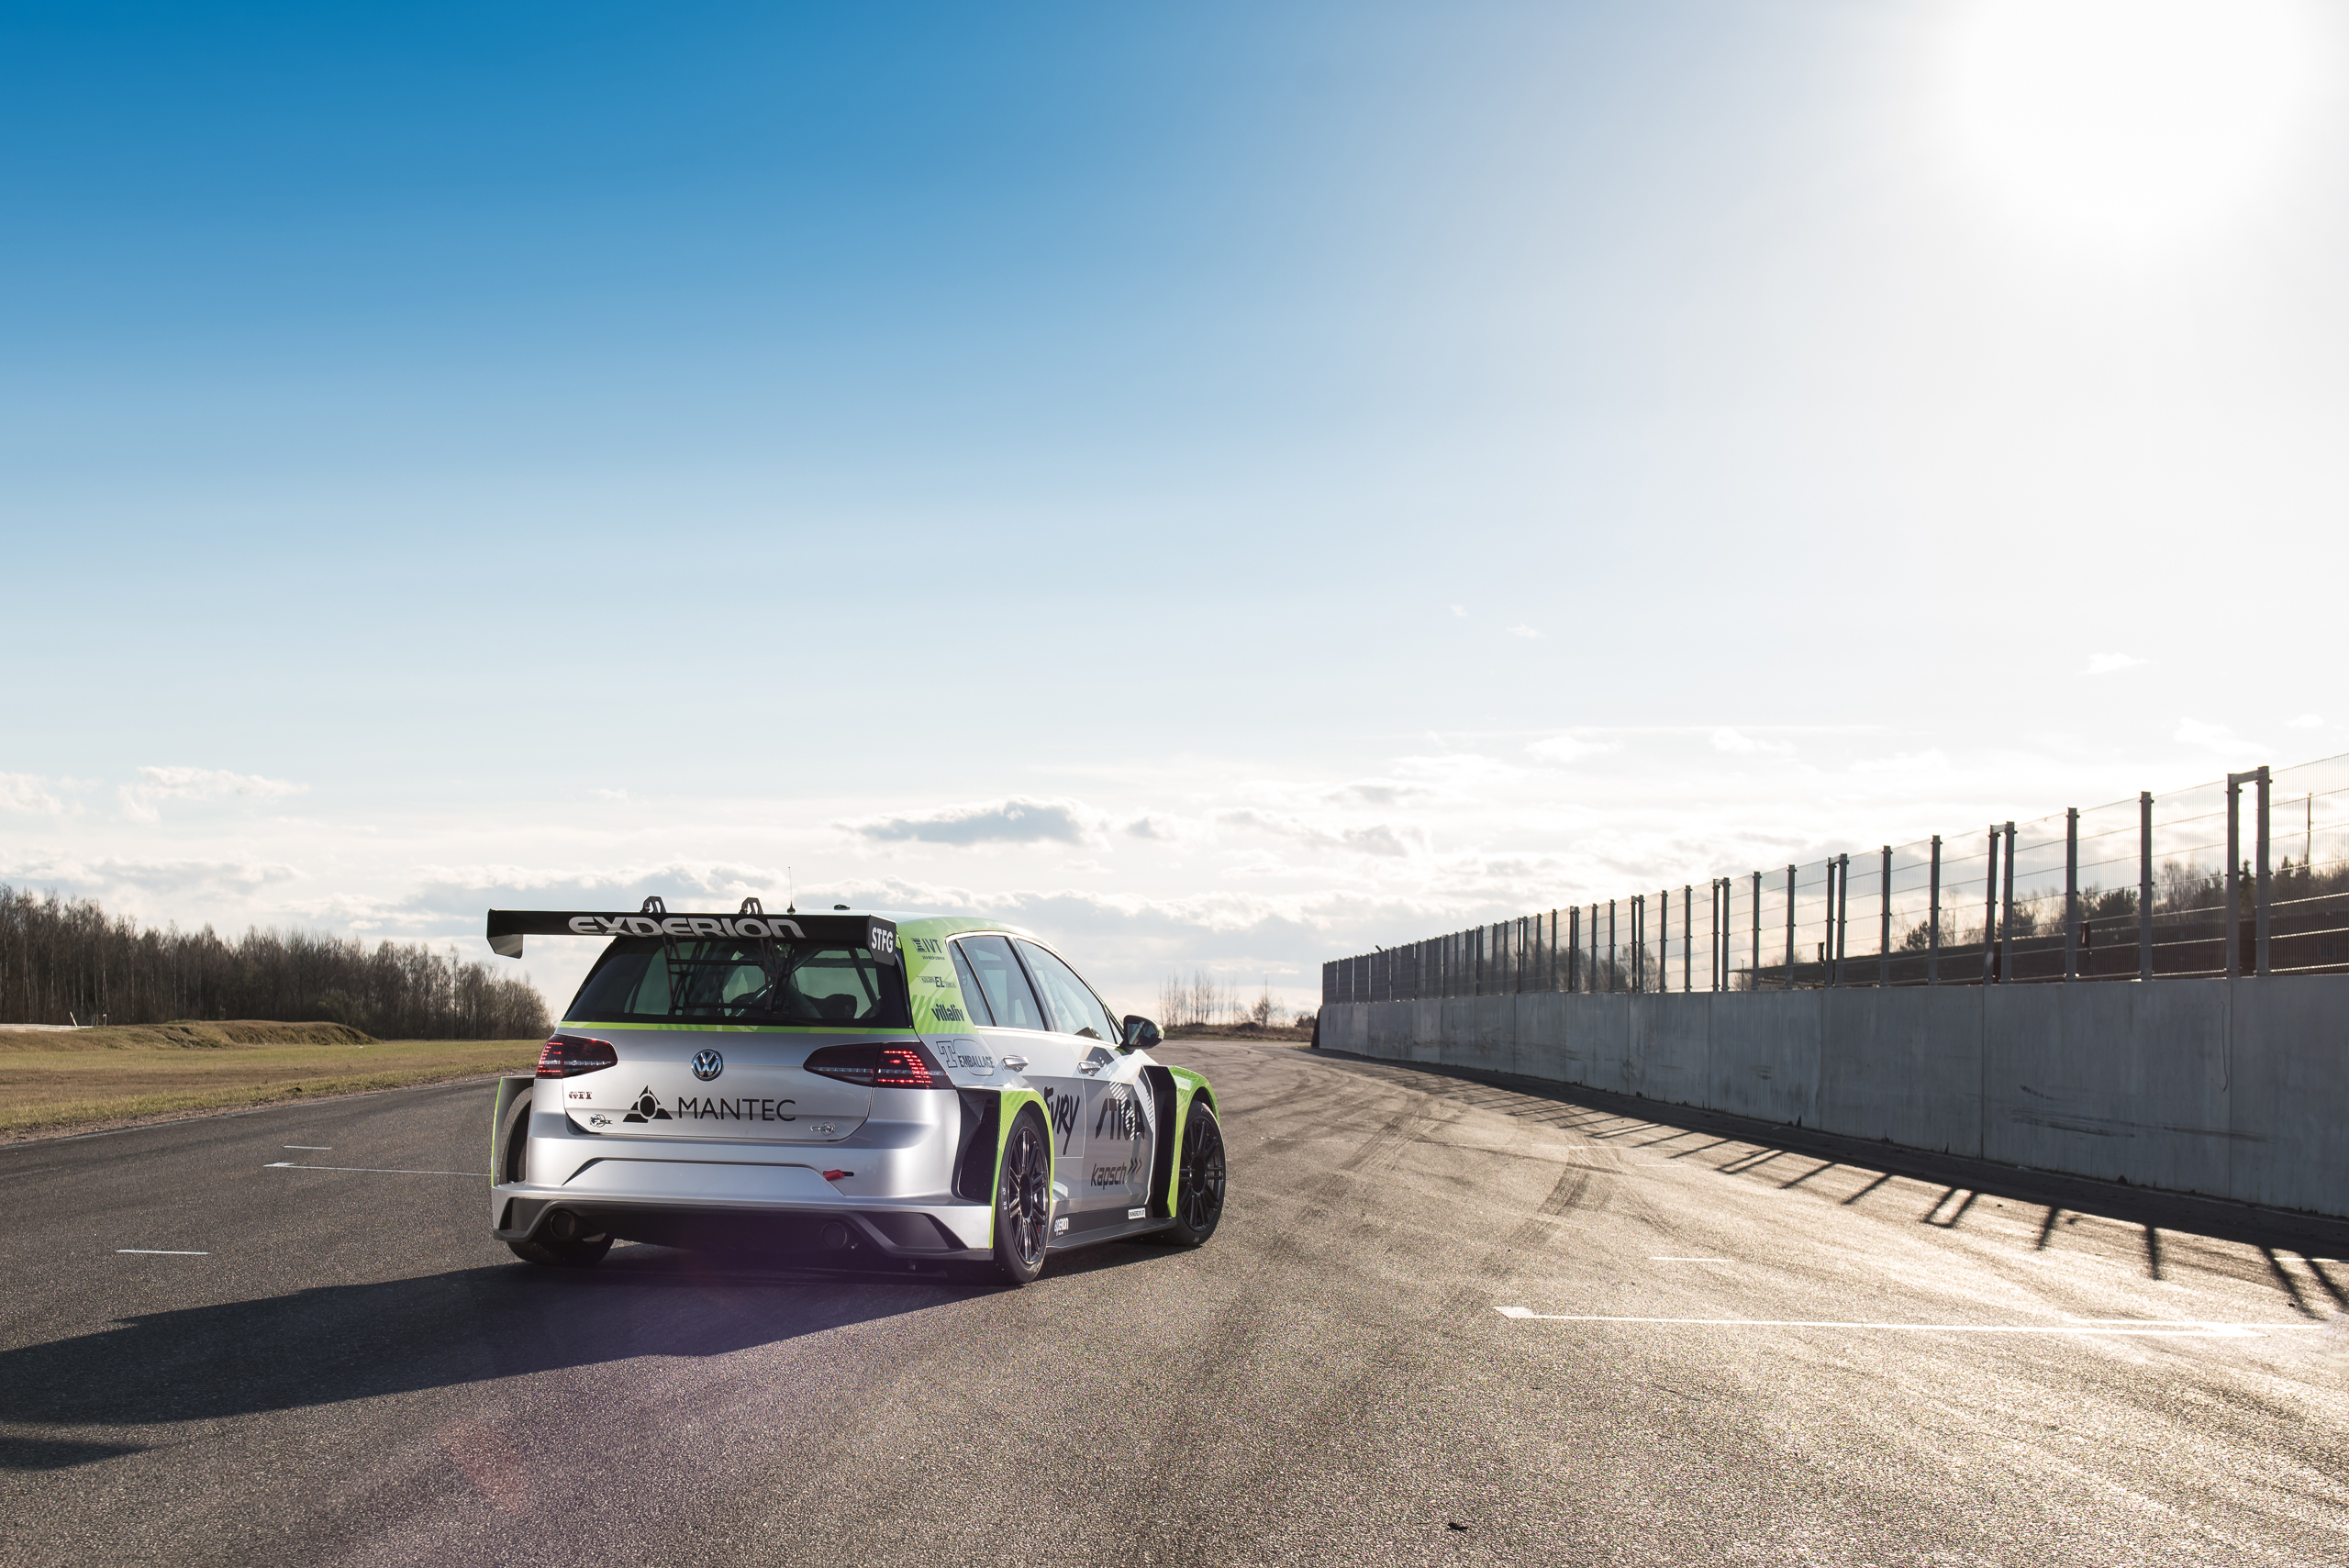 Experion racing teams Volkswagen Golf TCR med Mantec som sponsor.